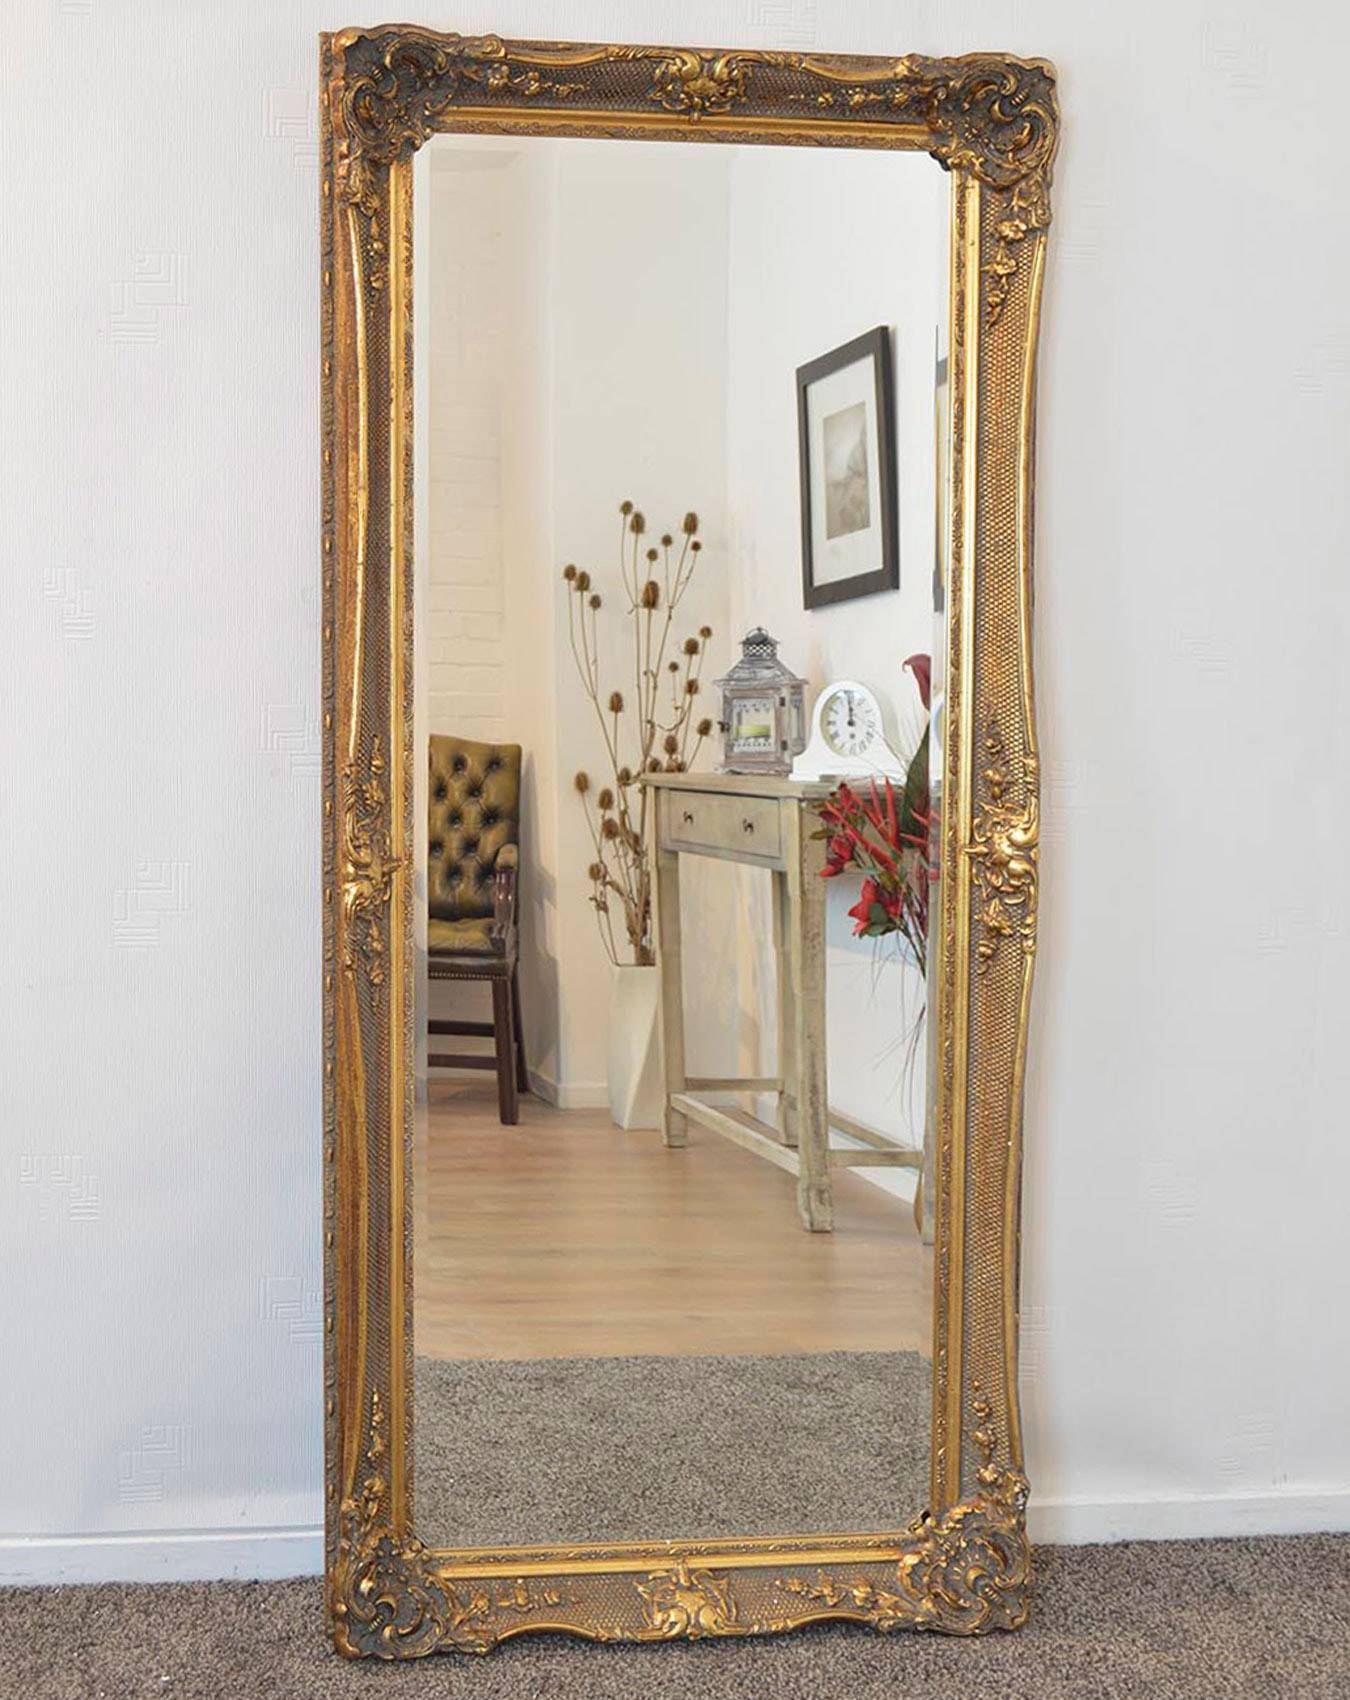 Gold Ornate Full Length Mirror 81Cm X 173Cm | Gold Mirrors inside Full Length Ornate Mirrors (Image 5 of 15)